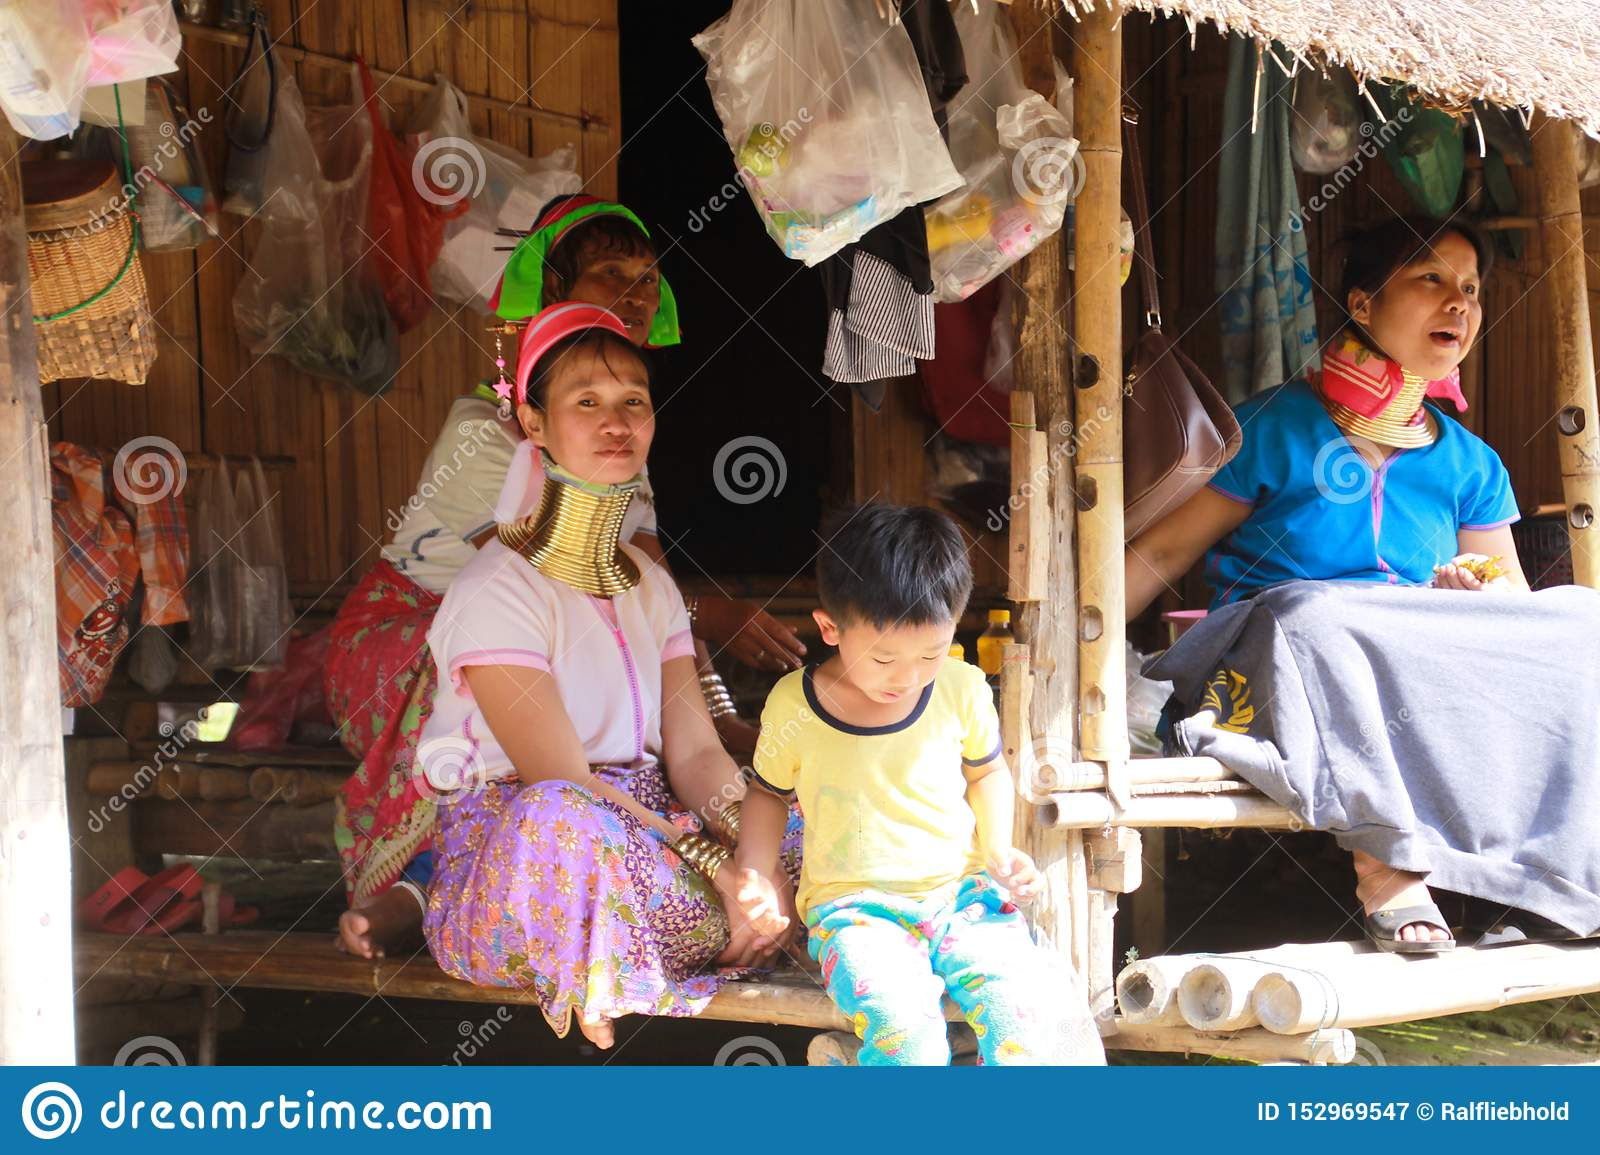 LONGNECK KAREN VILLAGE, THAILAND - DECEMBER 17. 2017: Long neck family sitting in front of a bamboo hut